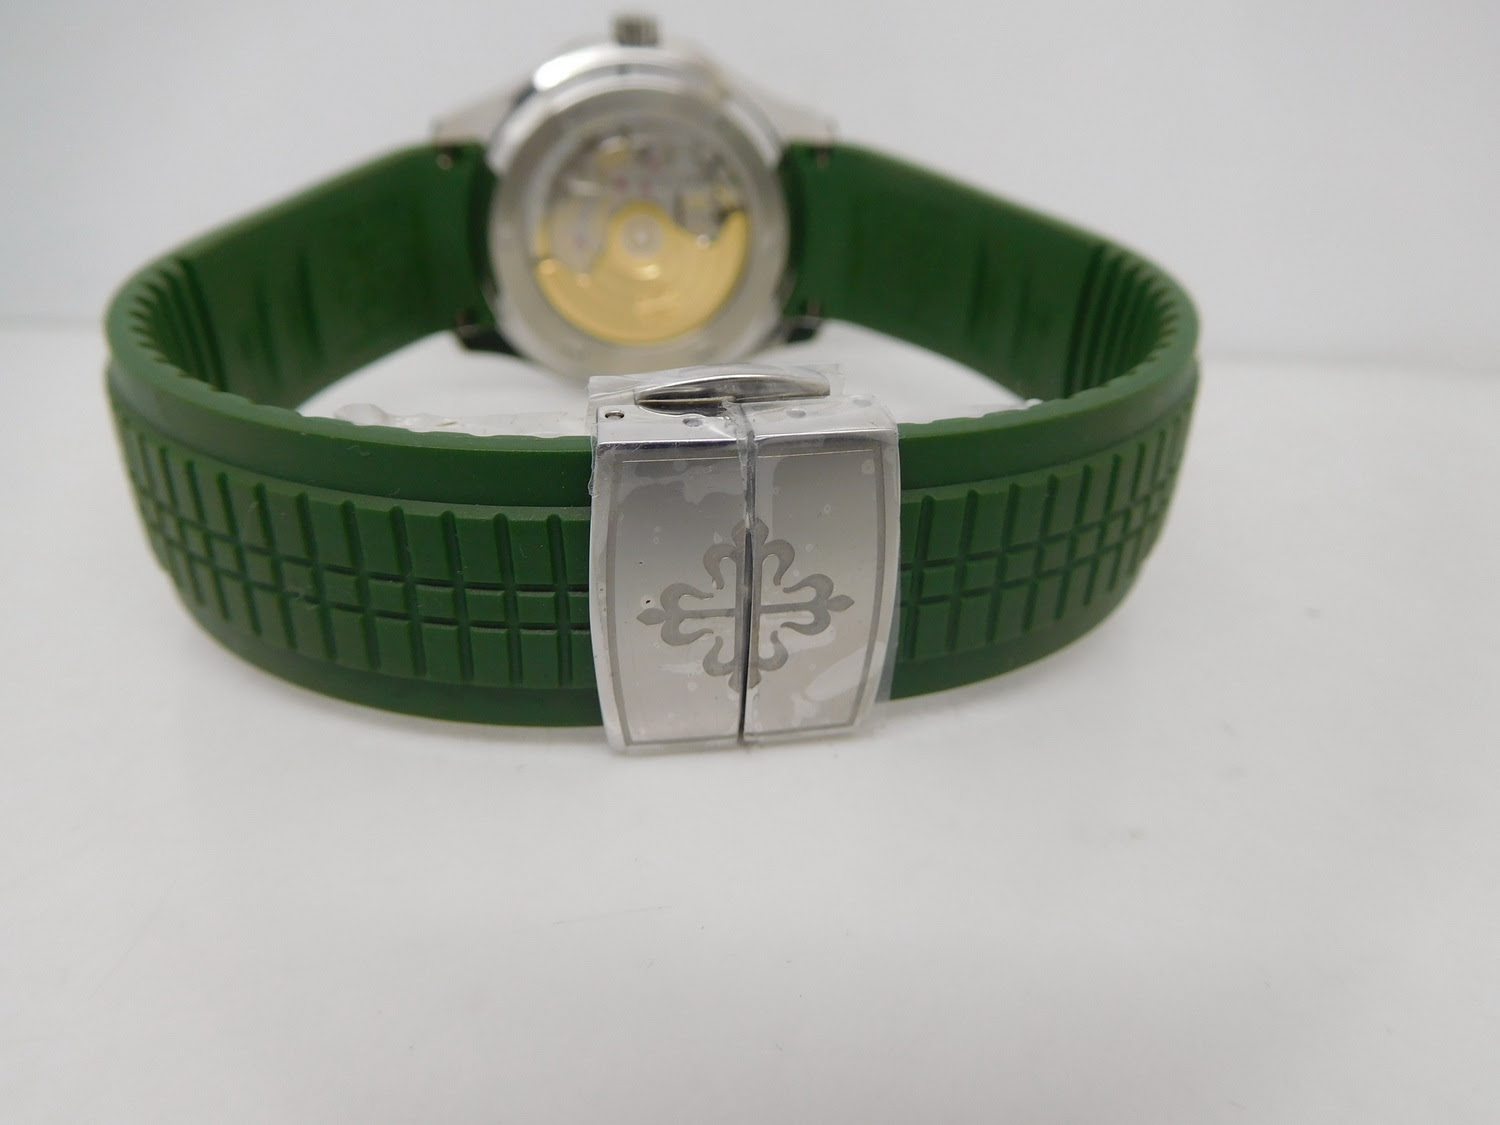 Patek Philippe Aquanaut 5167 Green Rubber